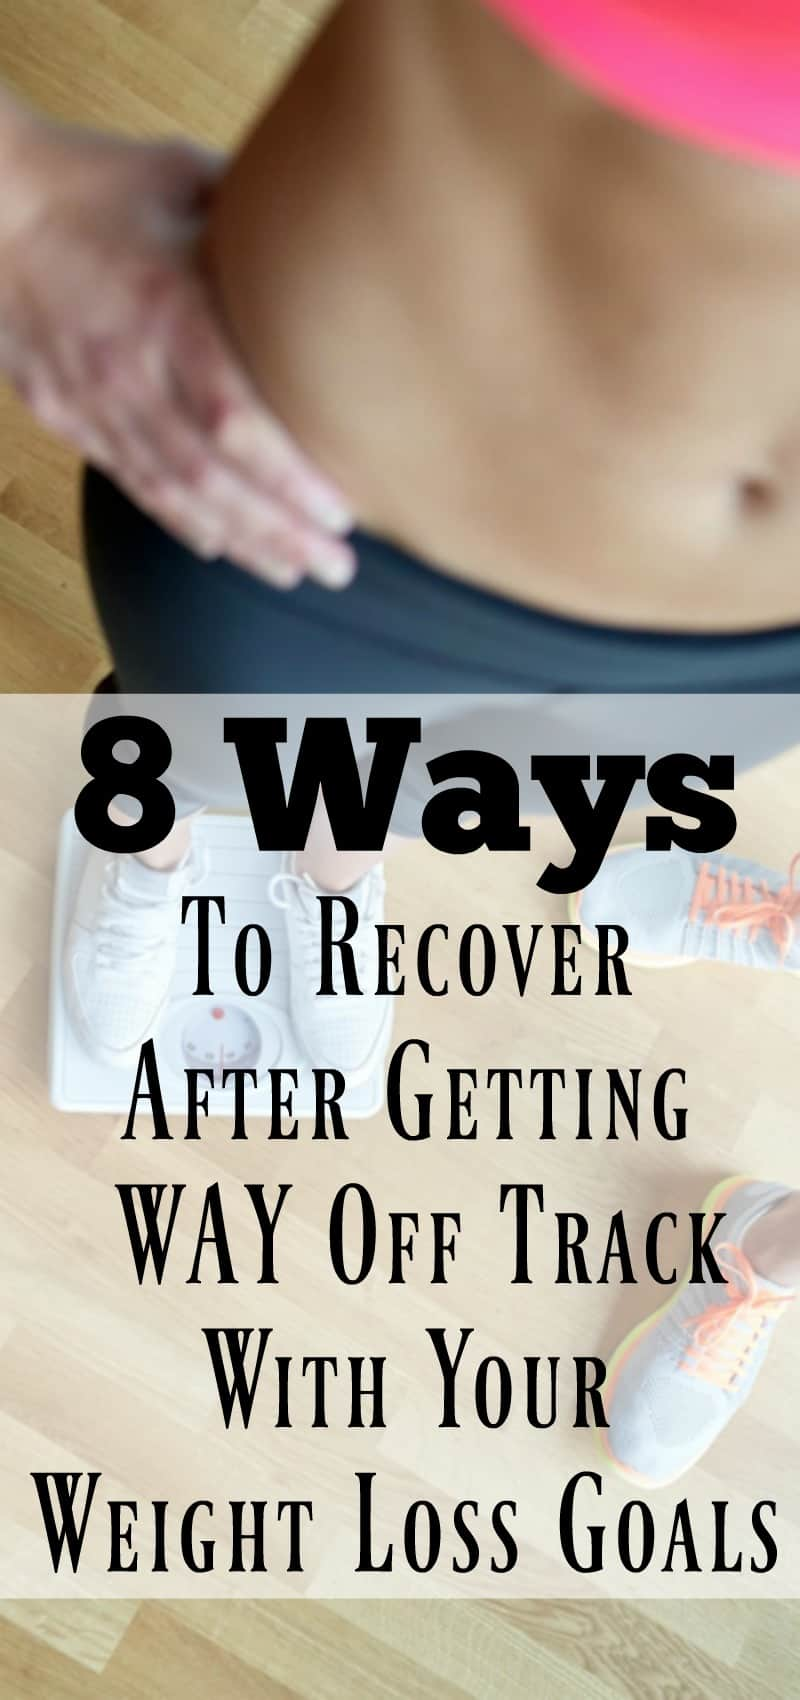 8 Ways To Recover After Getting Way Off Track With Your Weight Loss Goals Organize Yourself Skinny